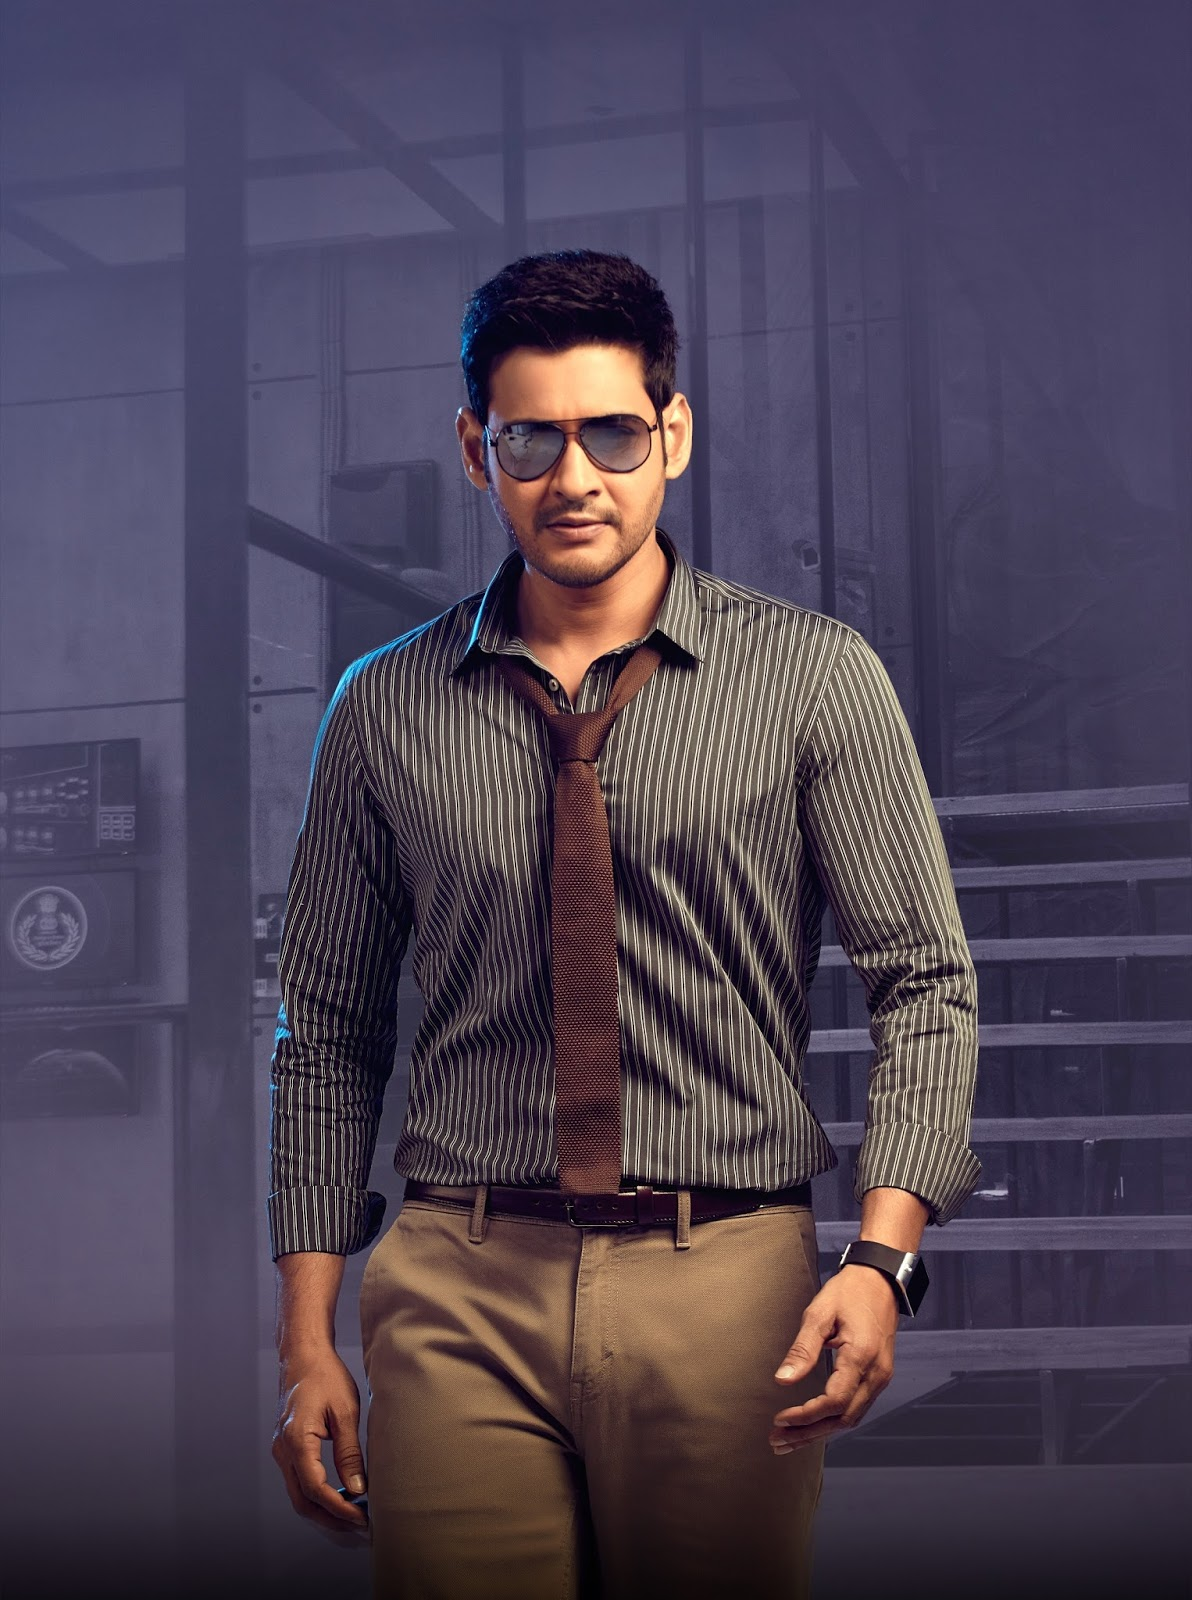 mahesh babu latest hd wallpapers and images new photos download - hd